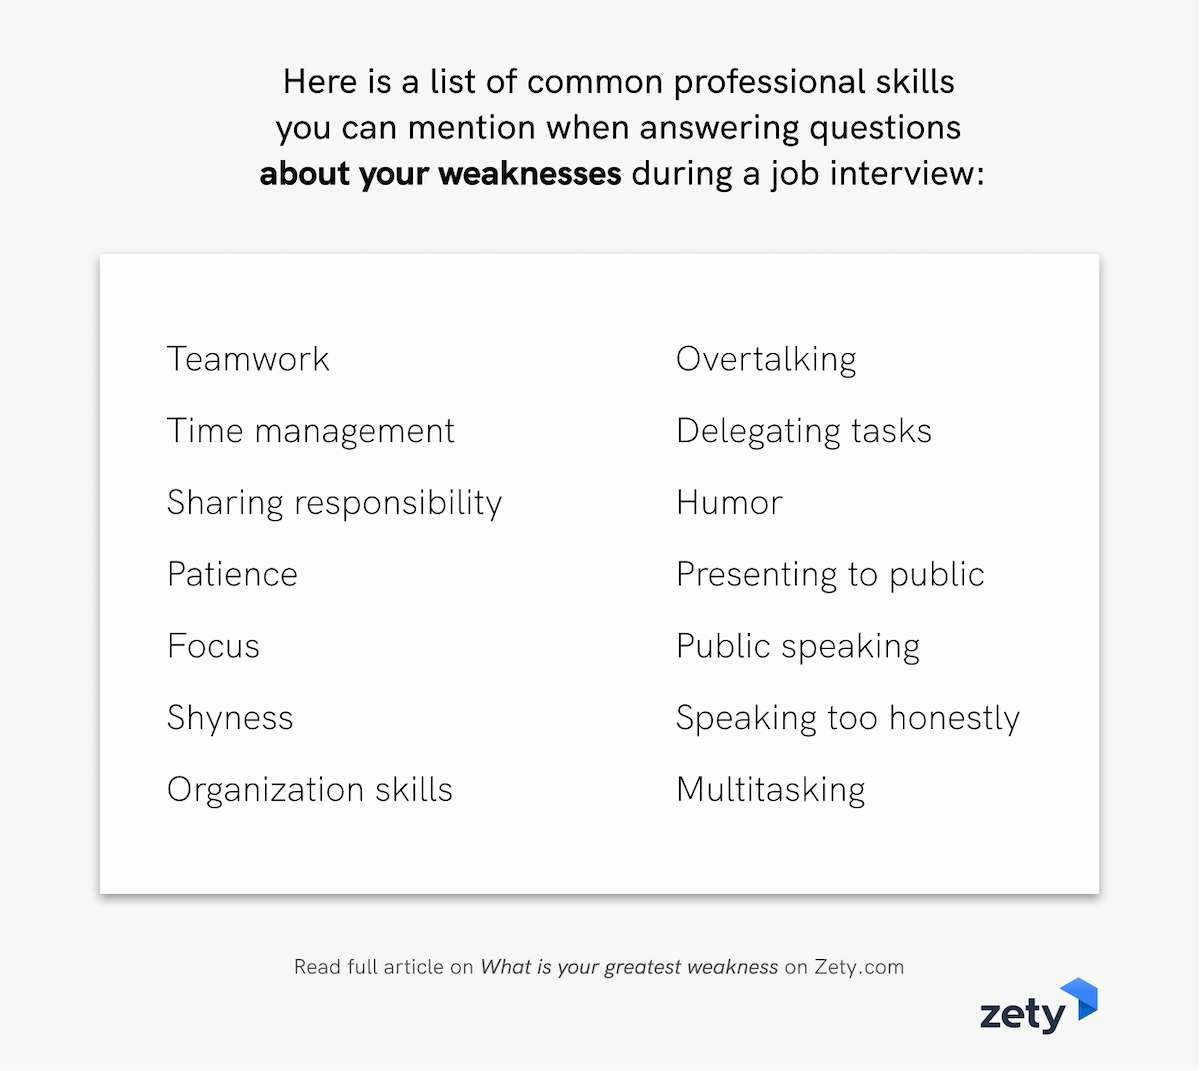 List of professional skills to mention when talking about your greatest weaknesses